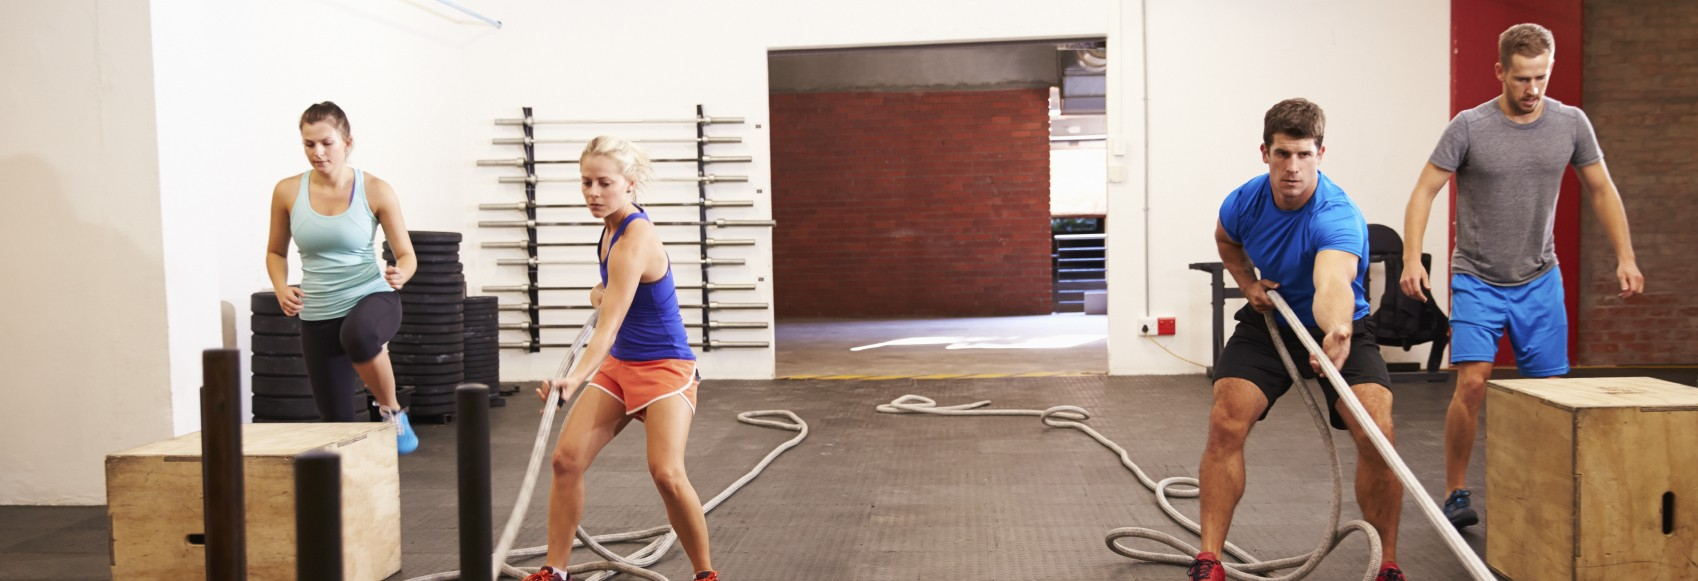 total body circuit training